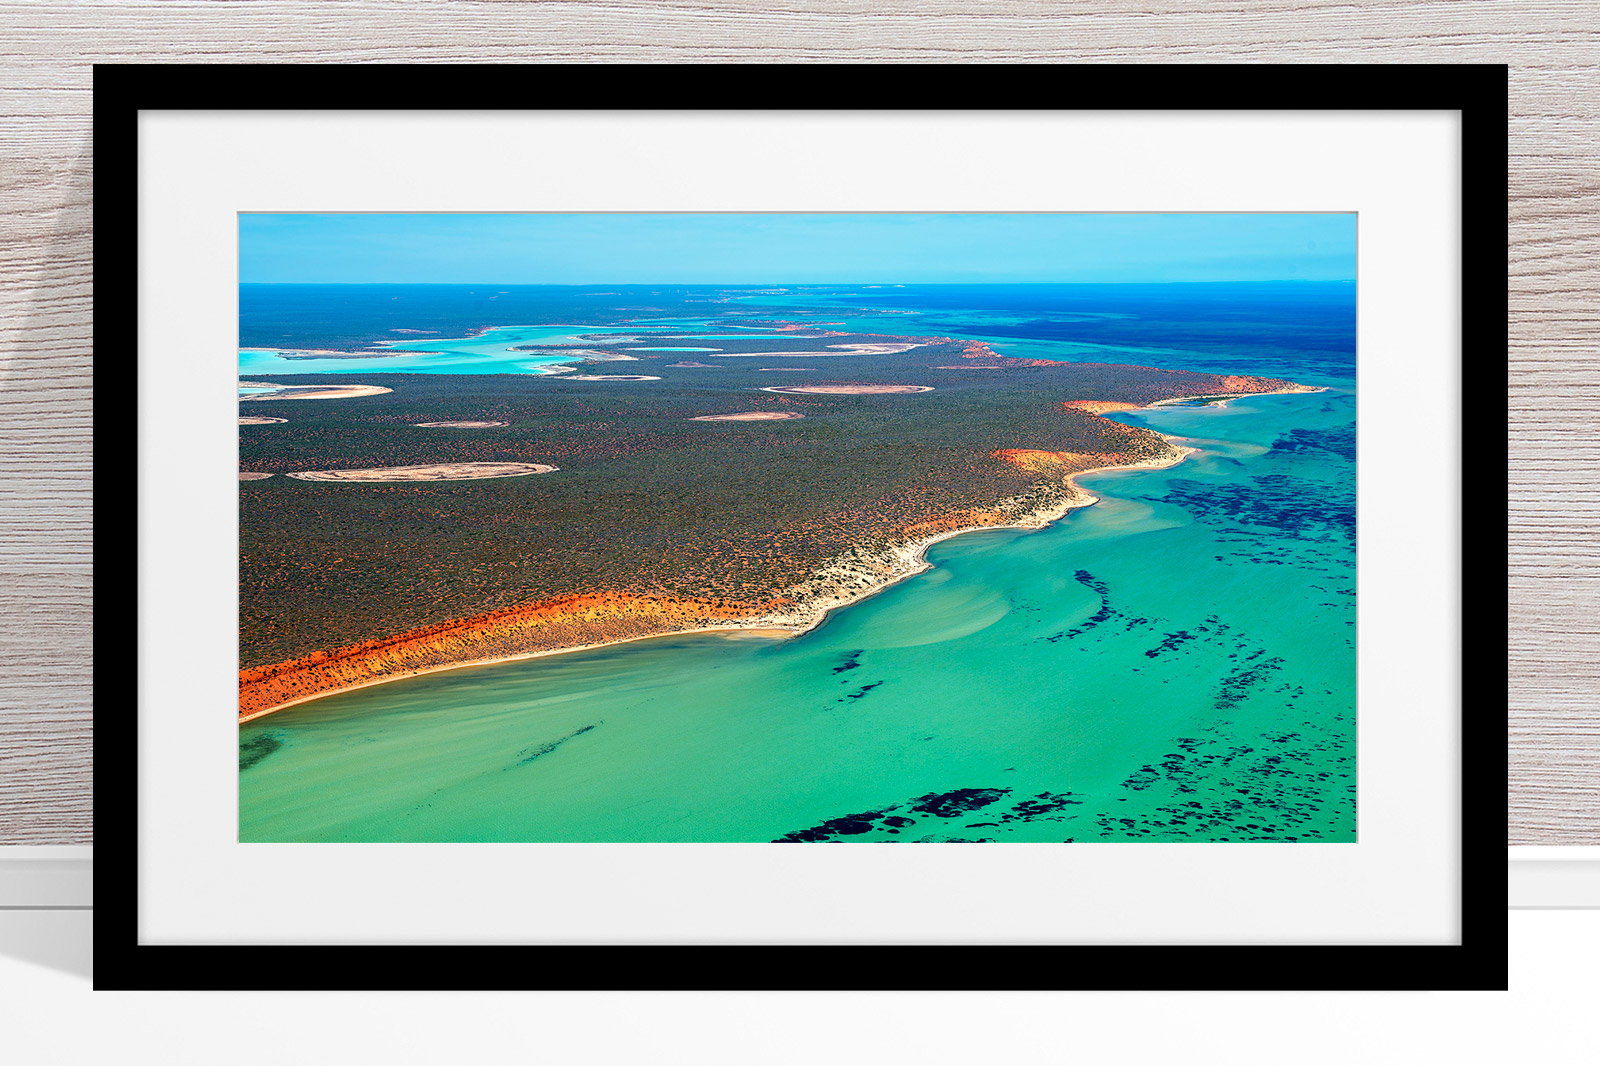 008 - Jason Mazur - 'Shark Bay Coastline' Black Frame